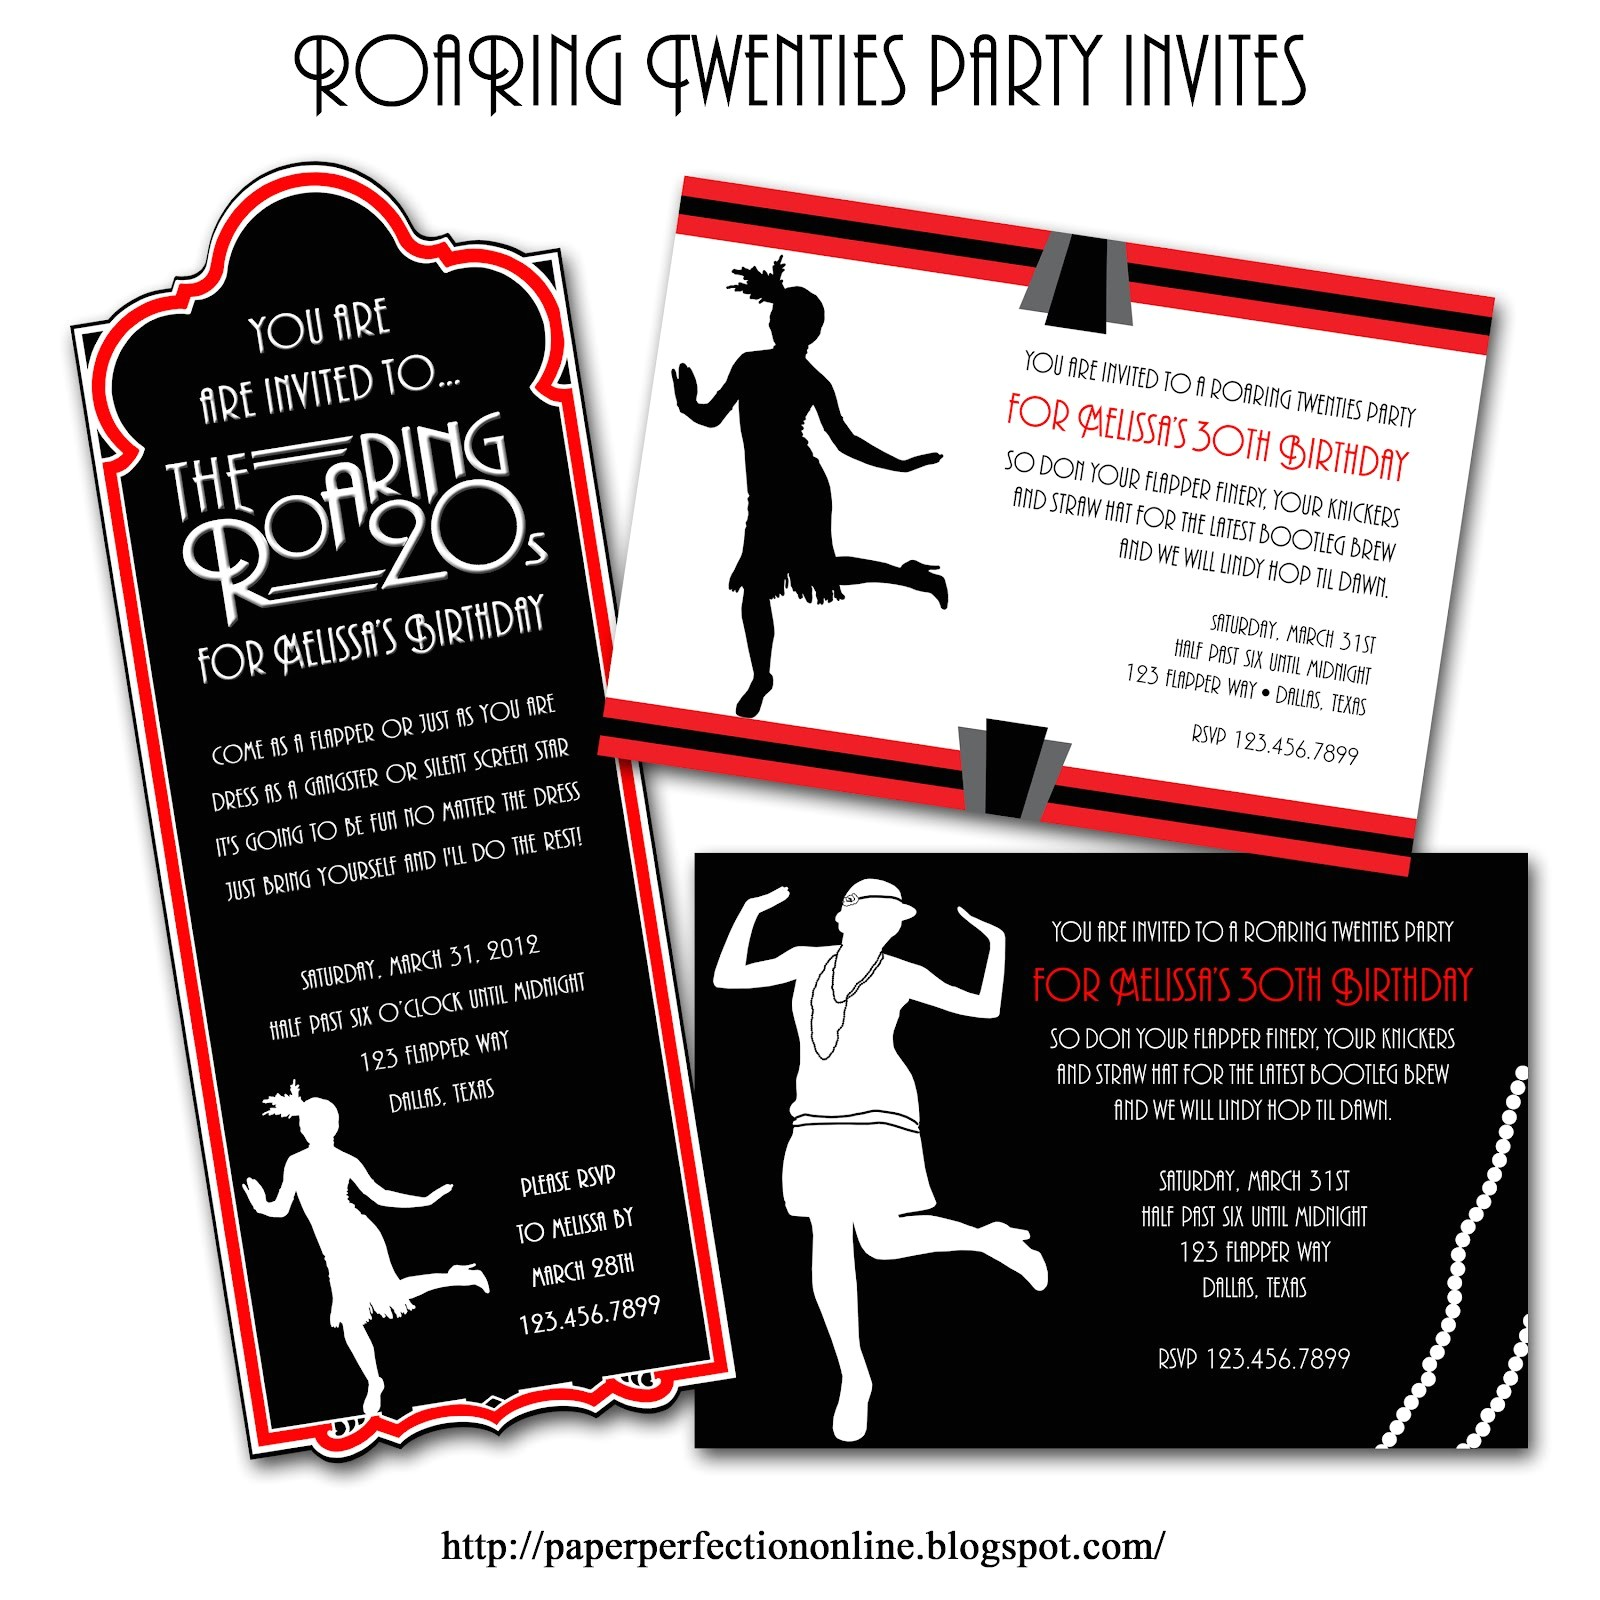 1920s Slang for Party Invitations Speakeasy Prohibition theme On Pinterest